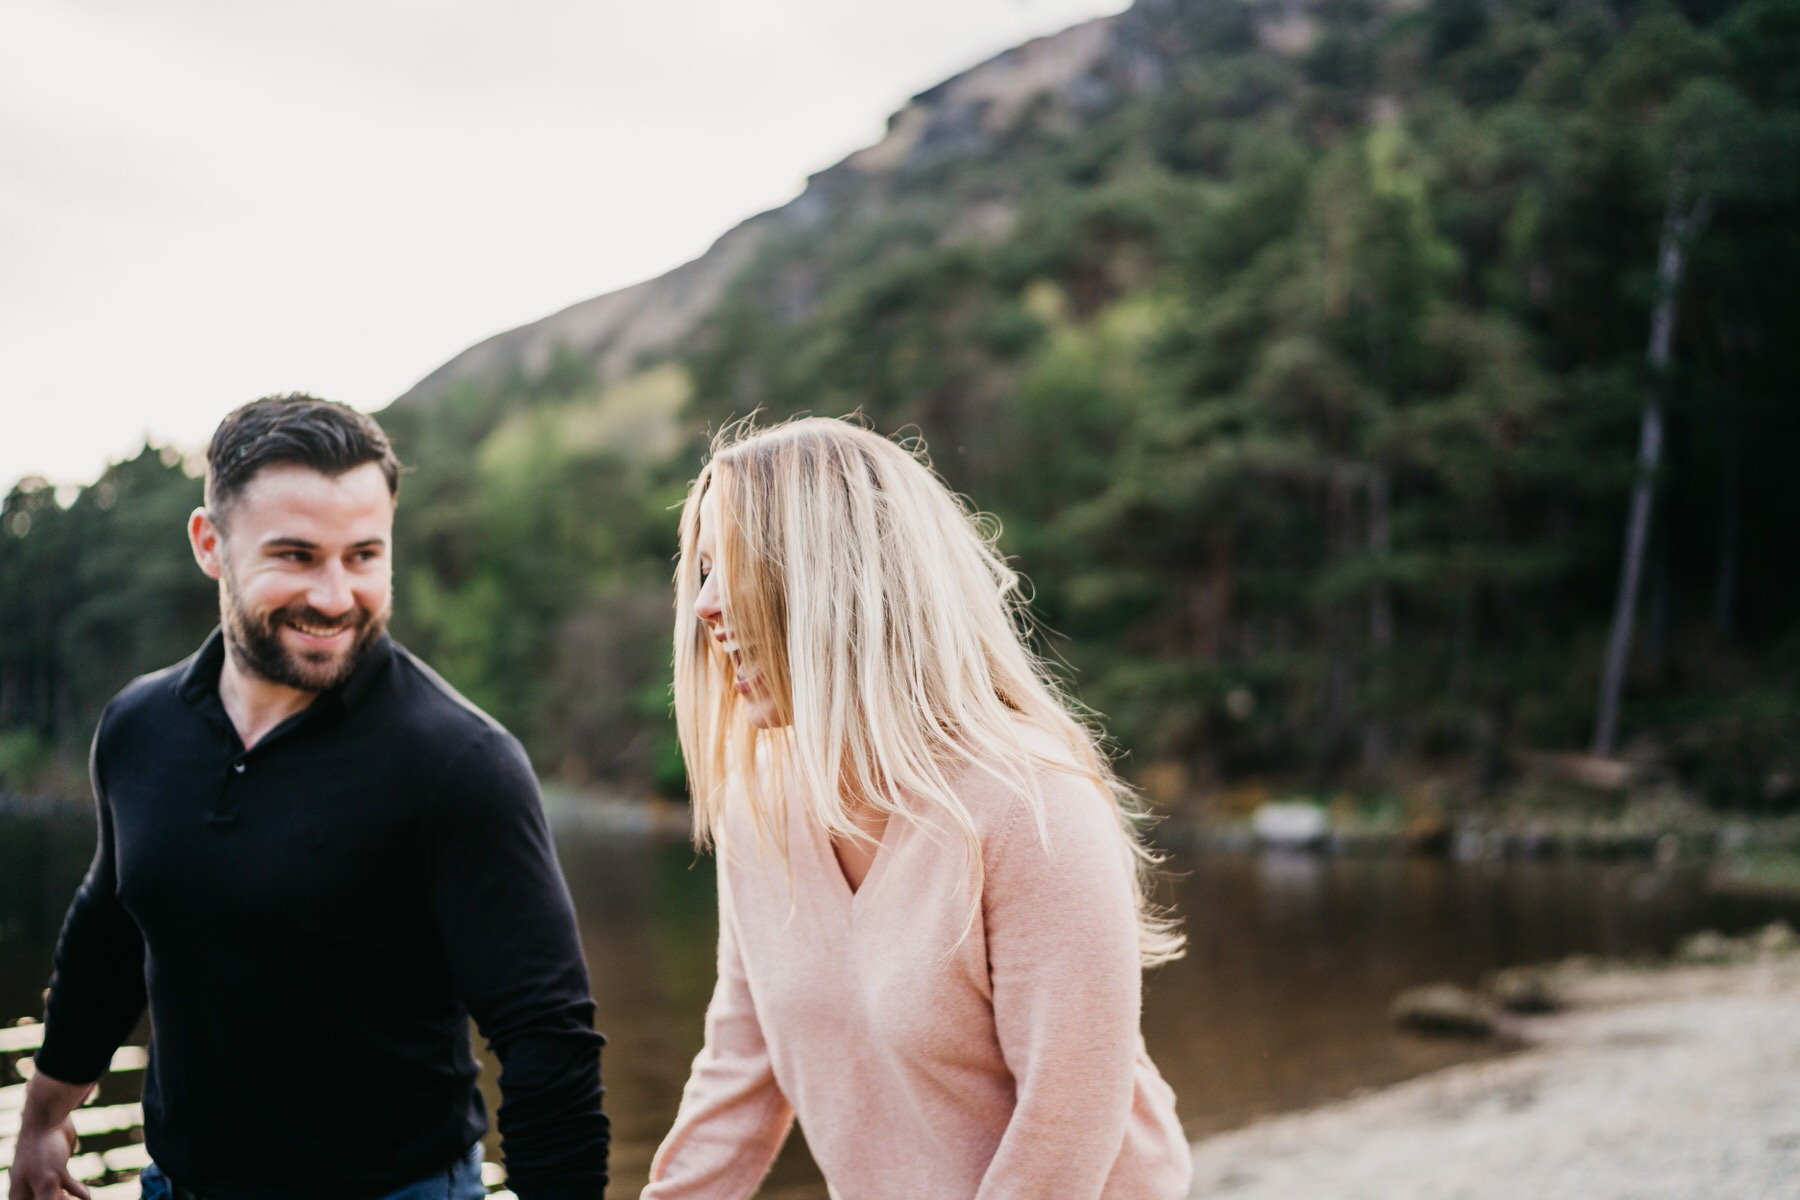 A couple laughing during an engagement shoot